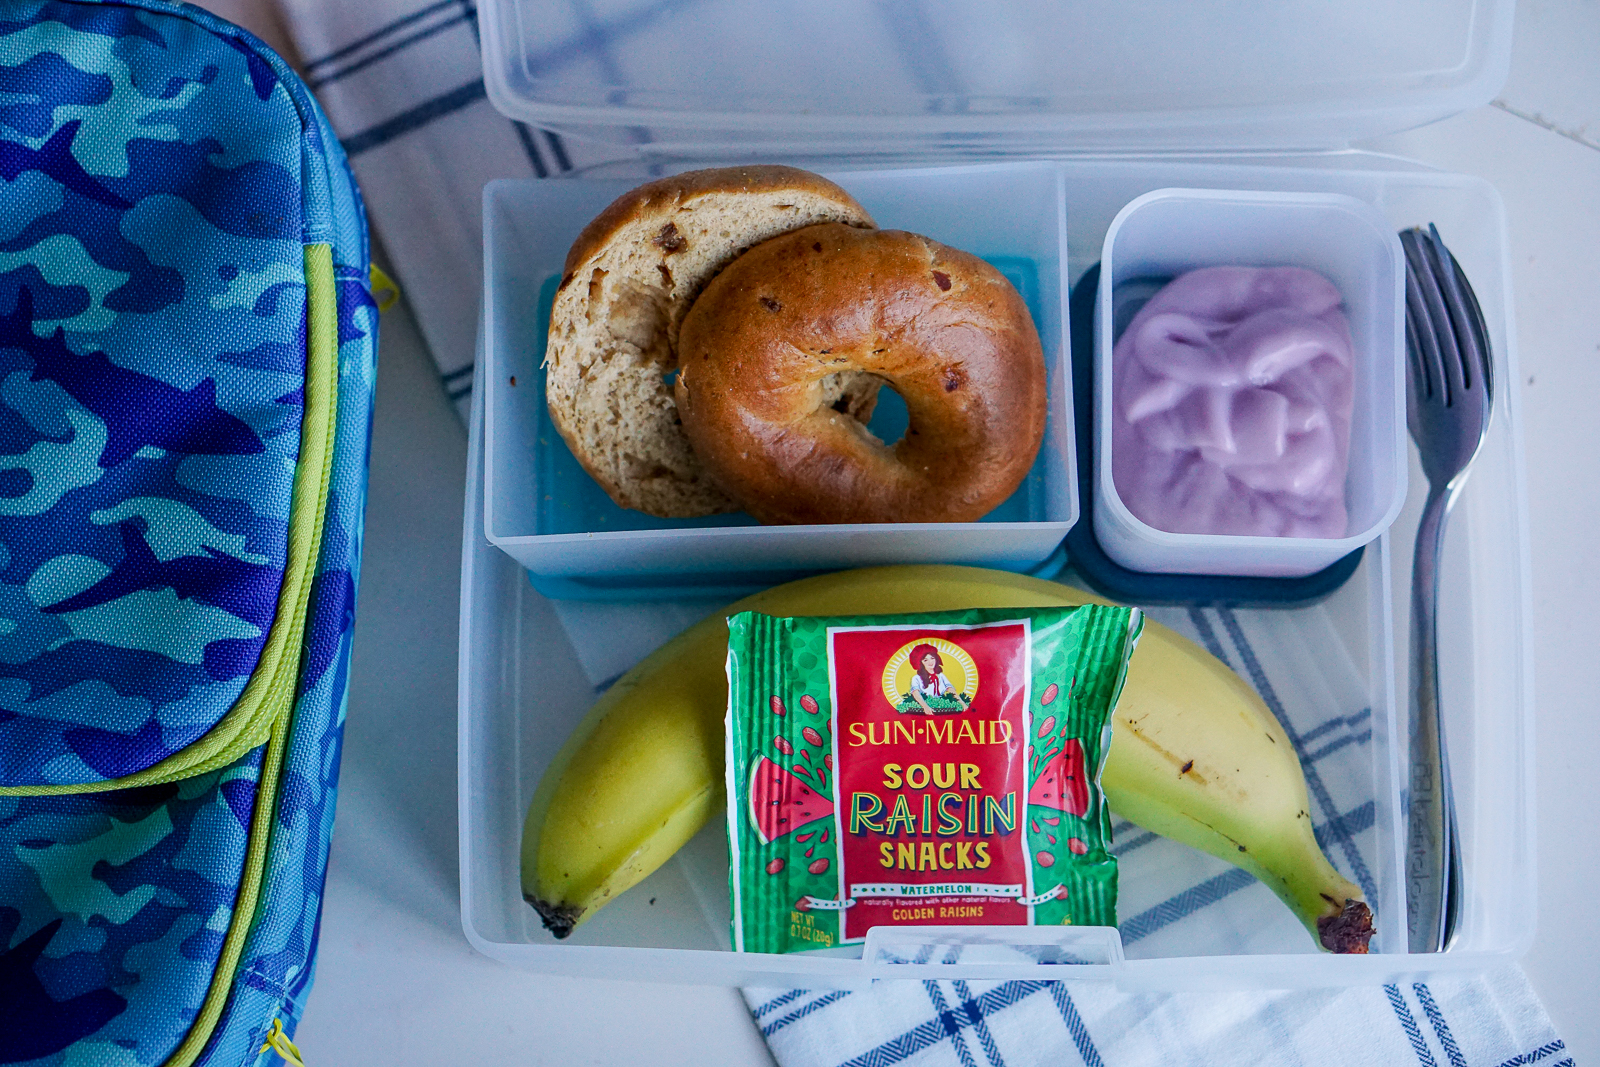 5 Easy Lunch Box Ideas for Packing Kid's School Lunches - Bento box lunch combos